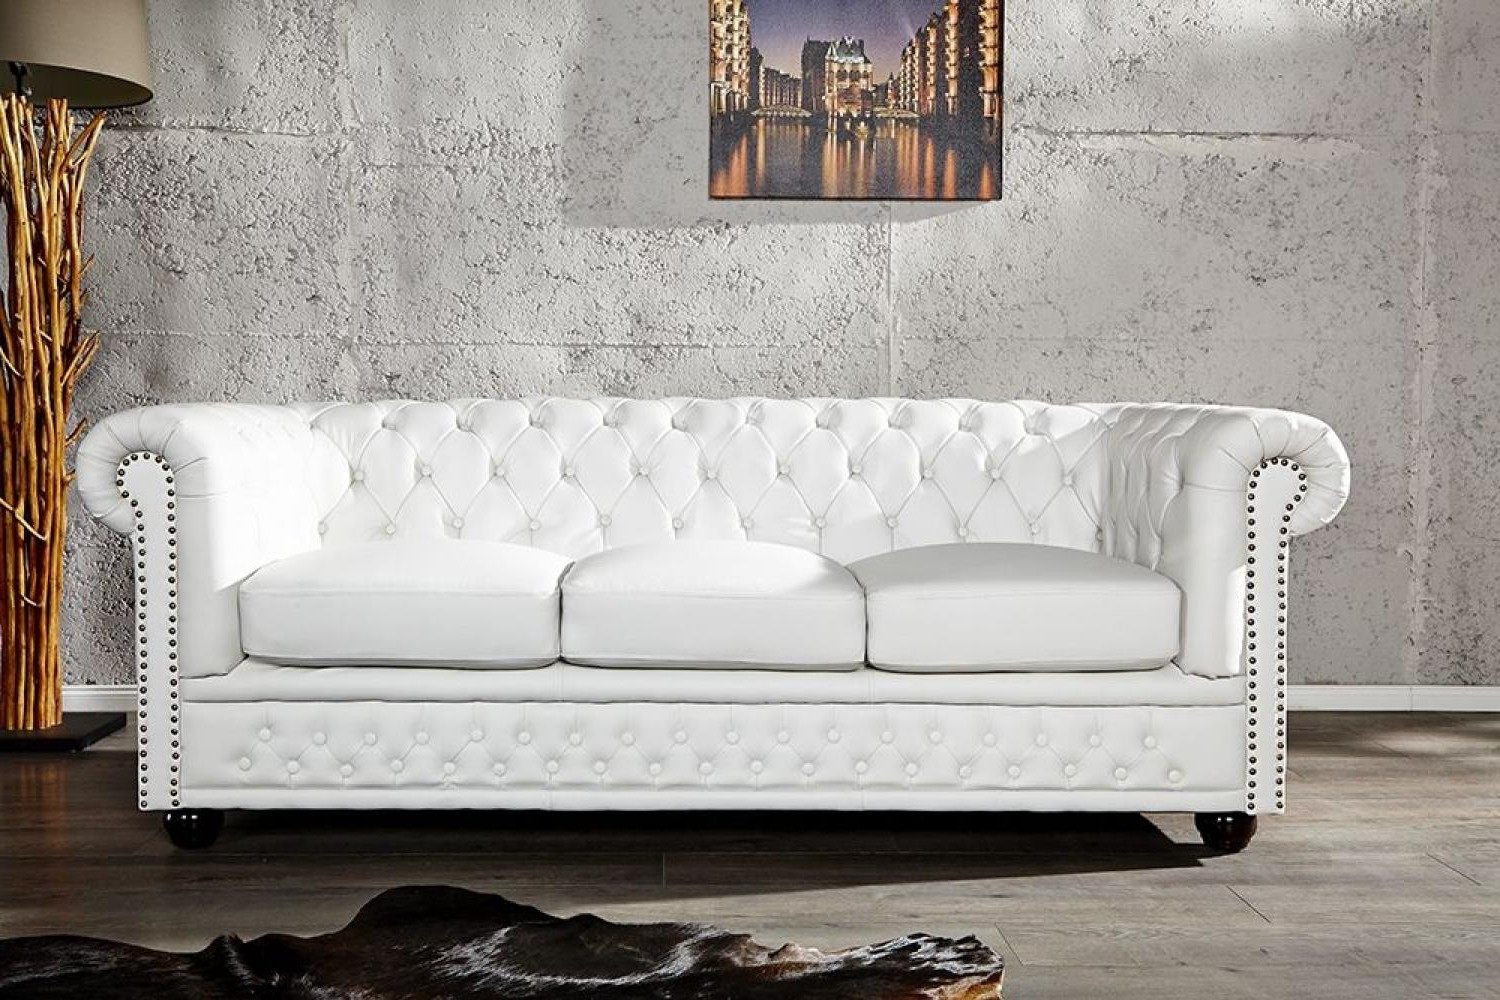 Canape chesterfield cuir blanc 3 places canap id es de d coration de mai - Canape chesterfield cuir blanc ...